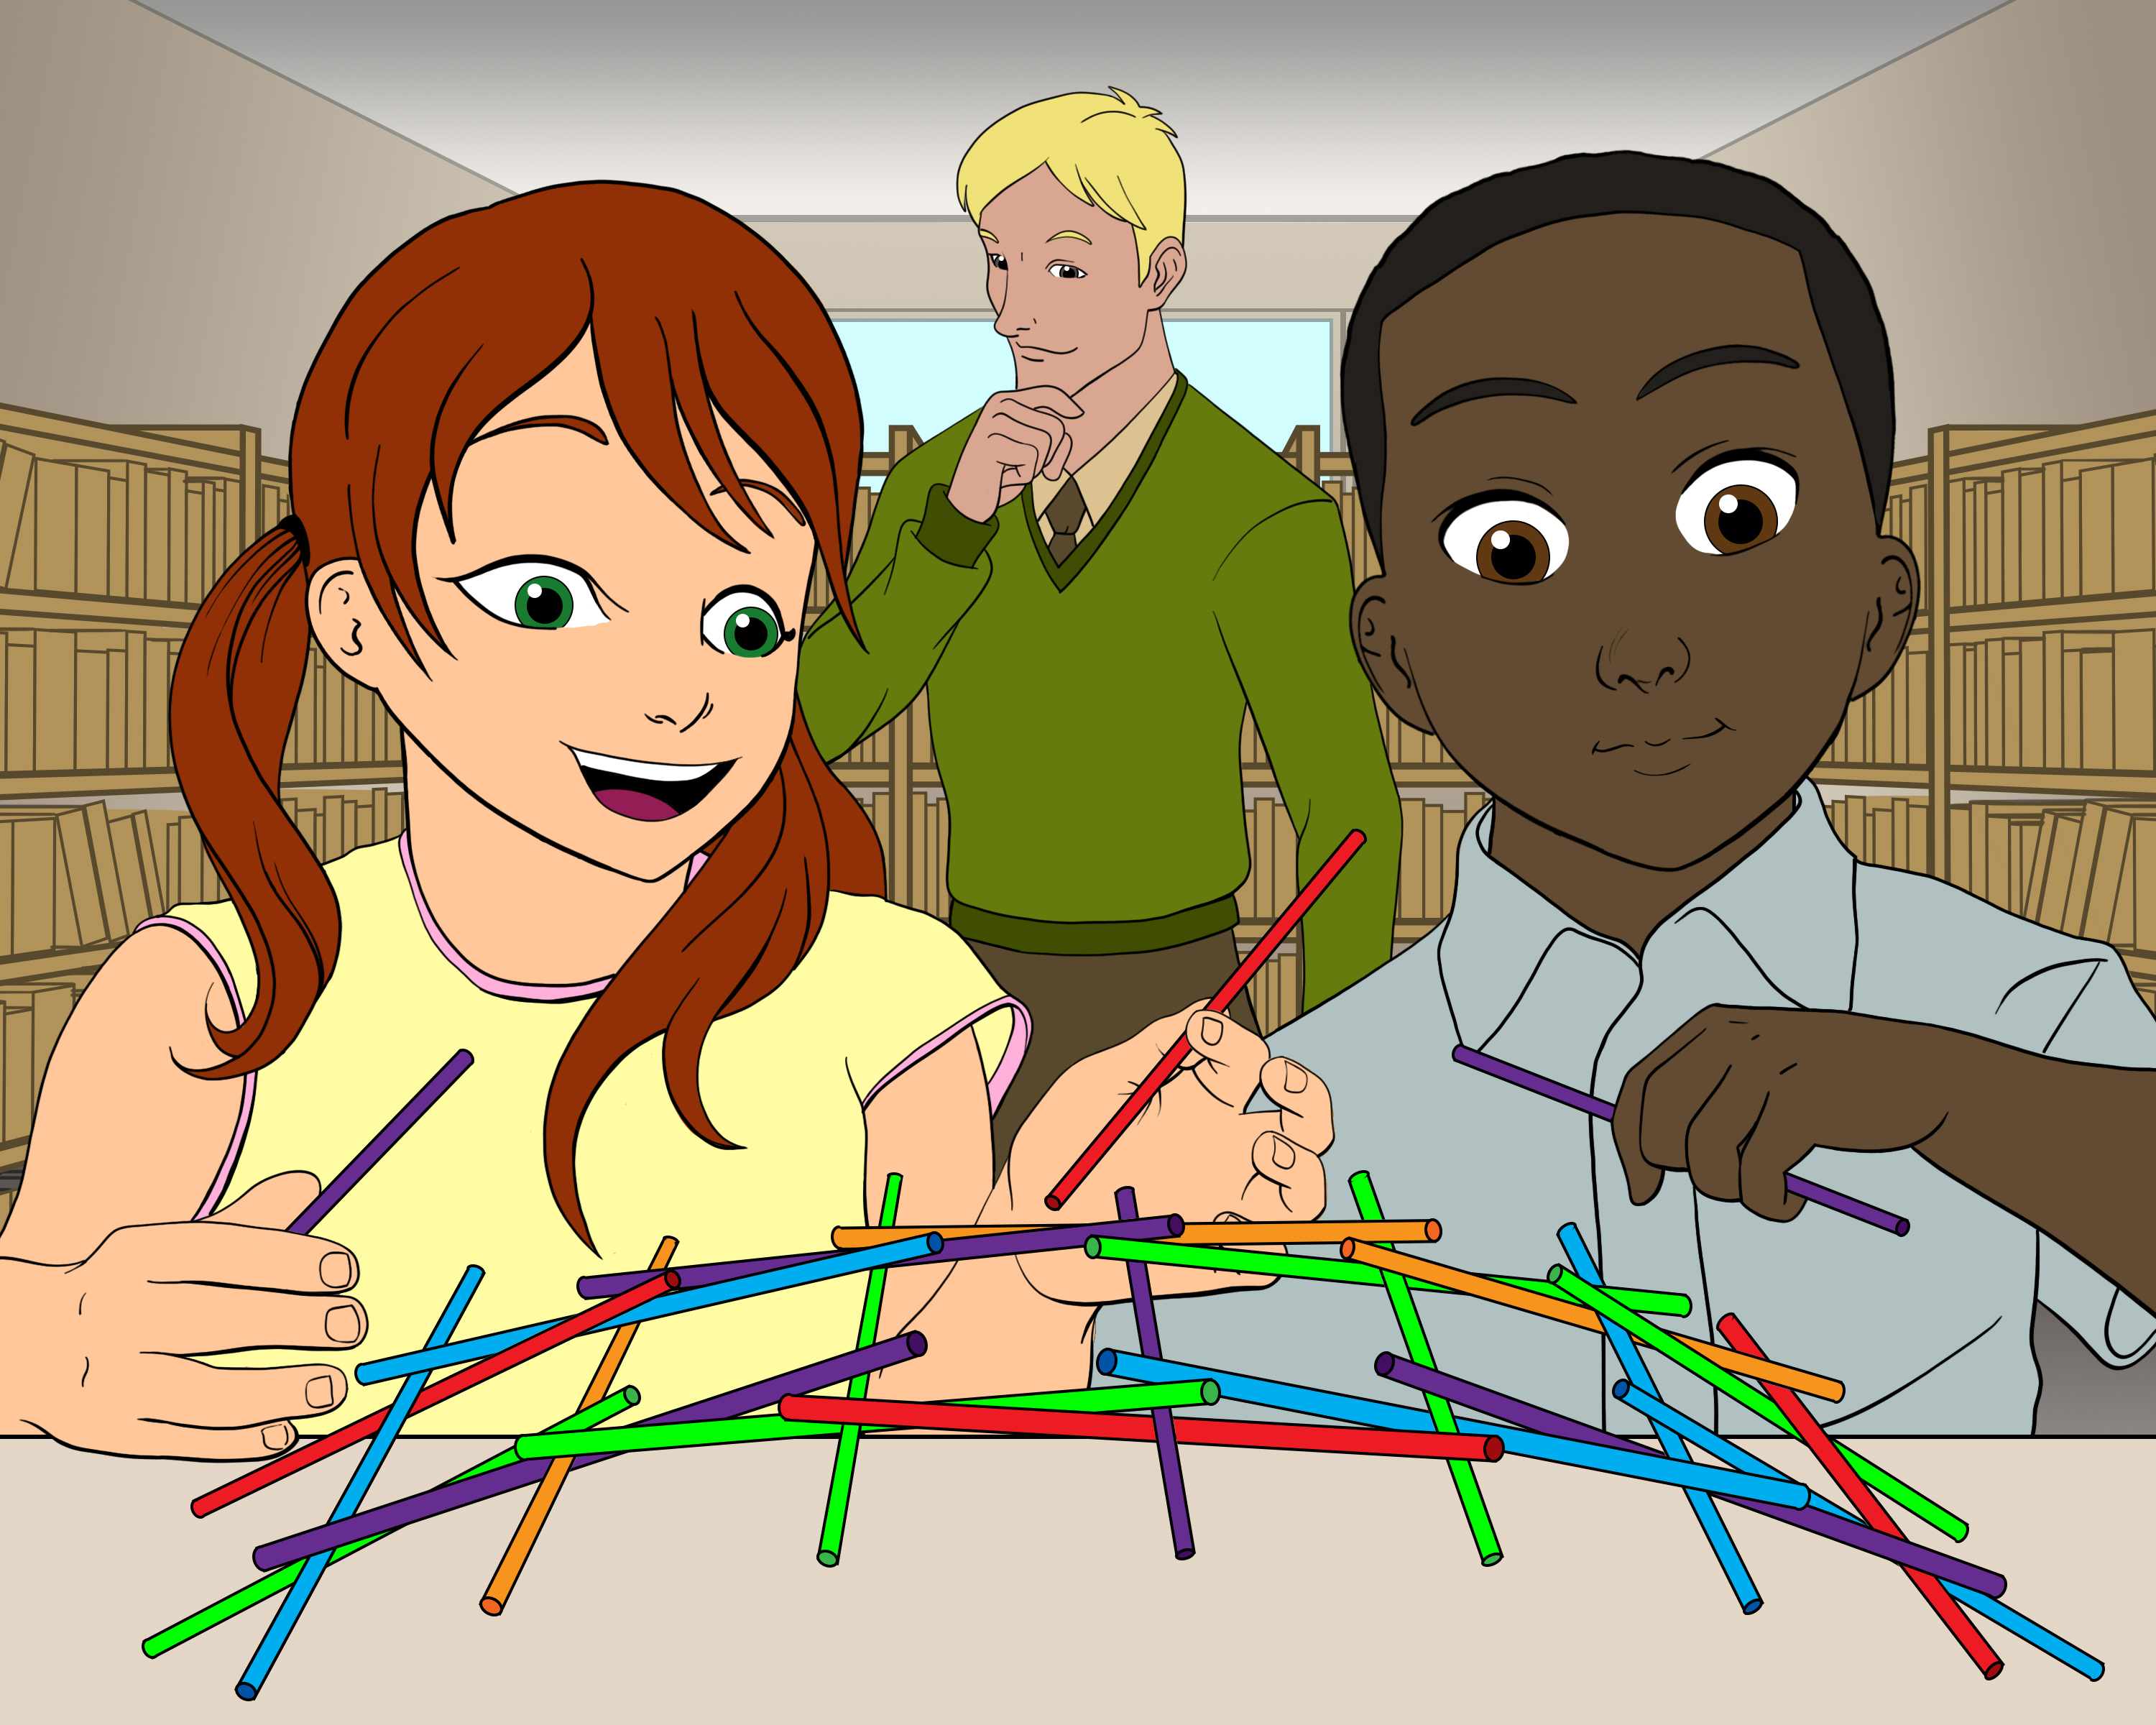 Two children build a structure out of colored sticks while the instructor observes.